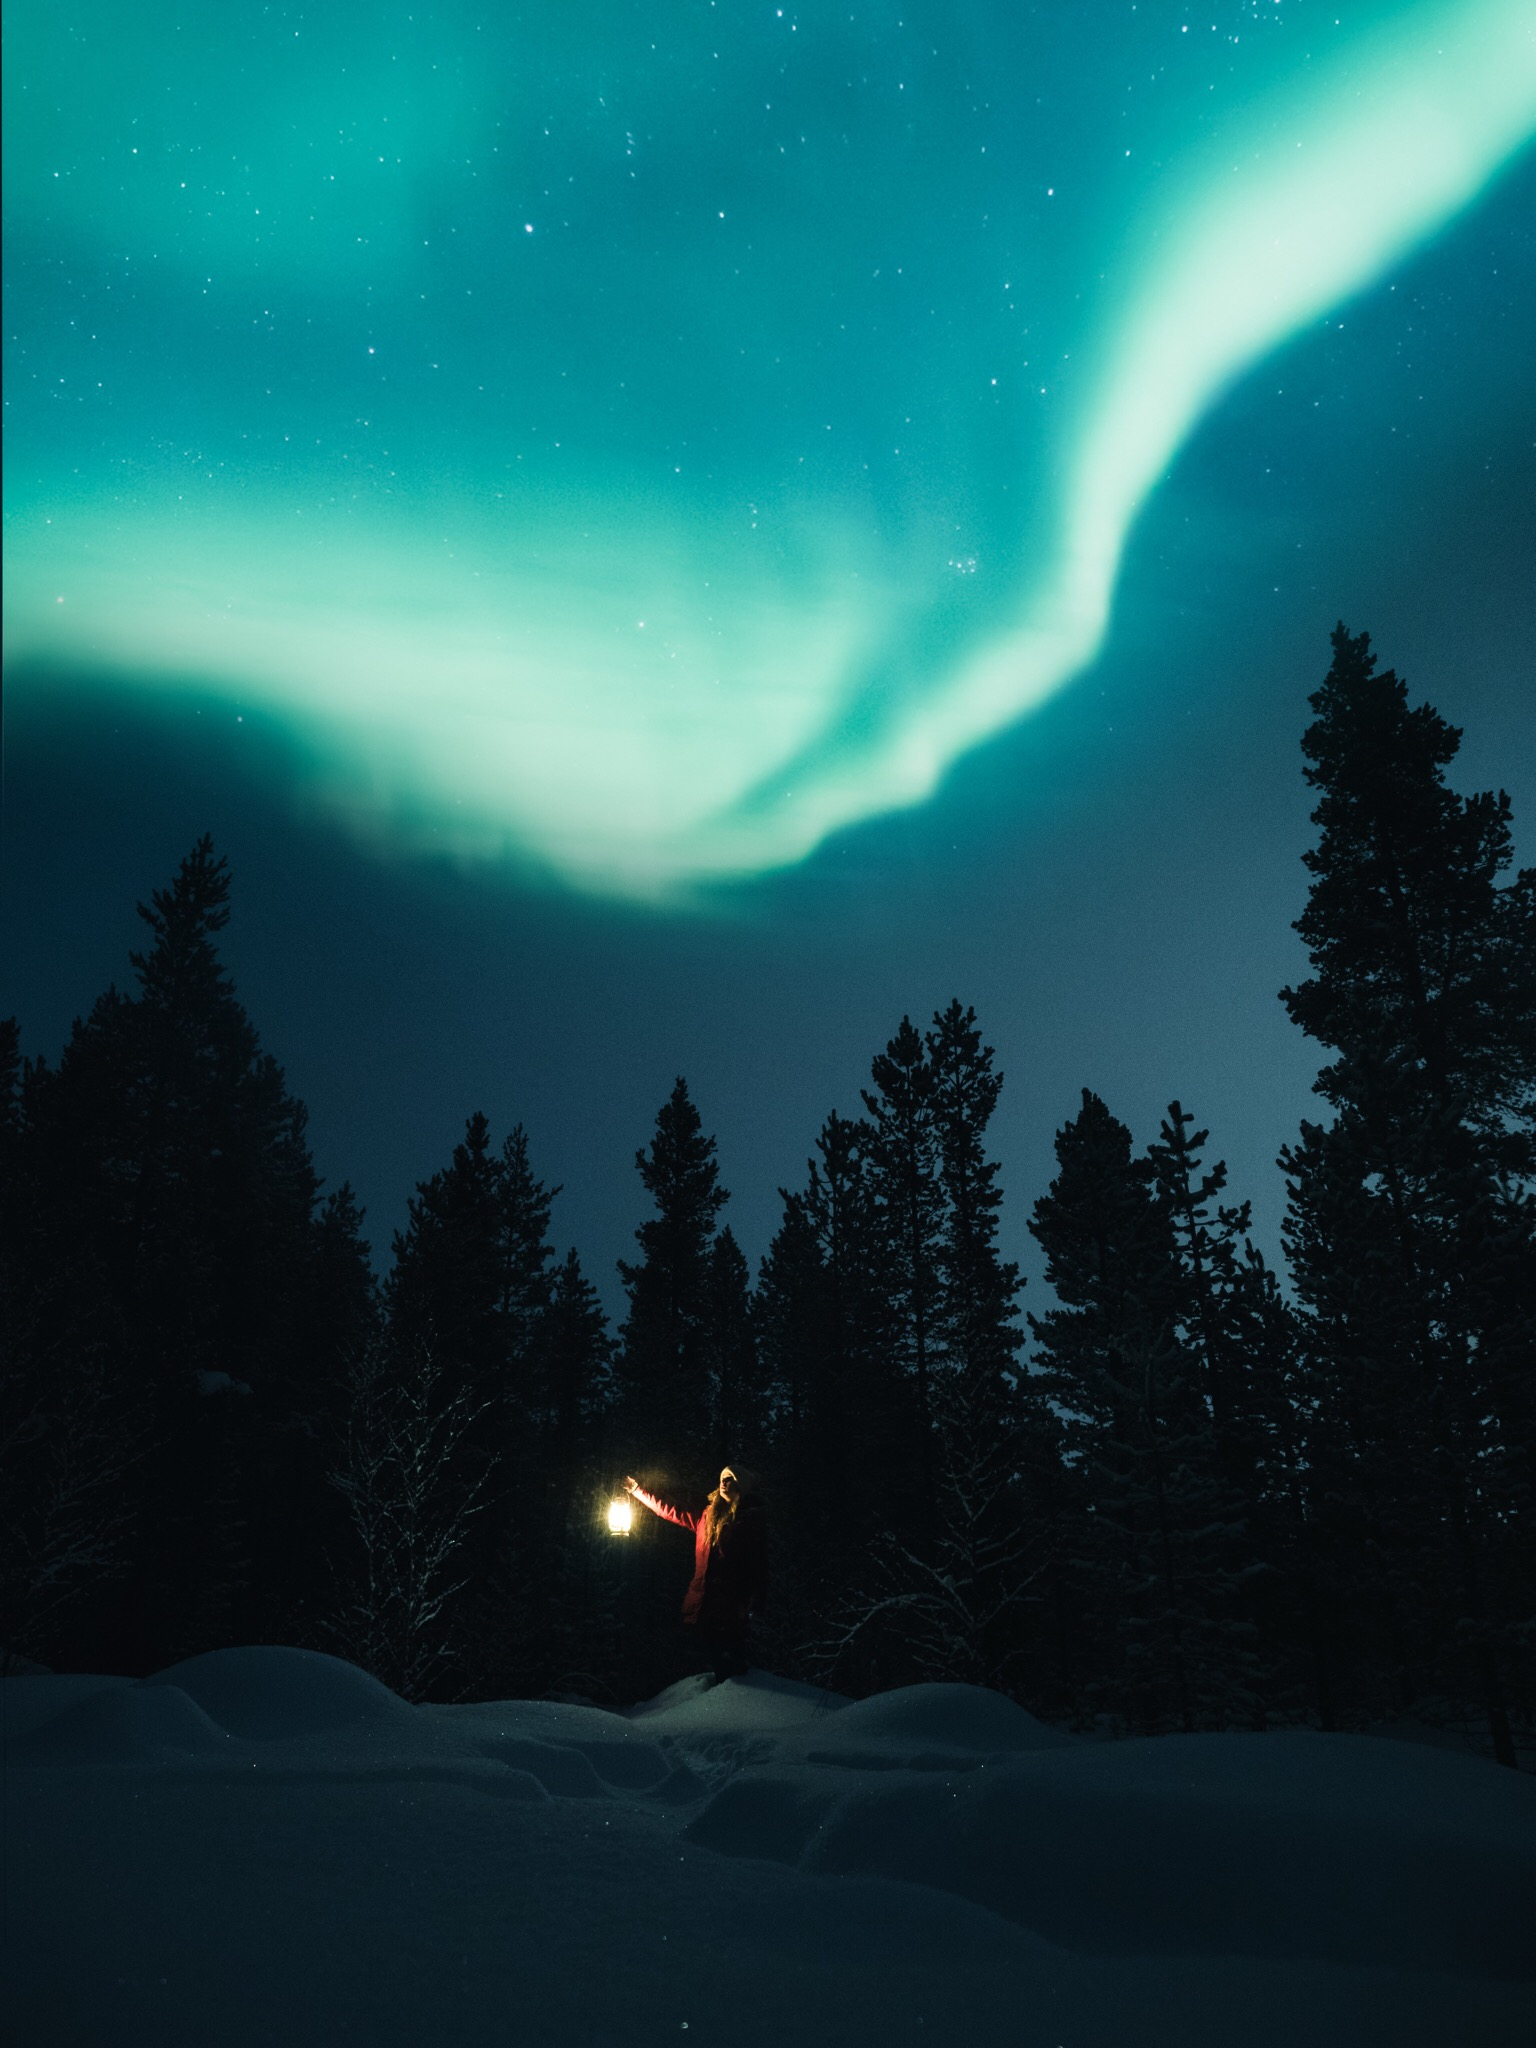 Chasing the northern lights - ..should be on your list when you make it to Finland during winter. If the skies are clear at night, drive a little away from the cities and watch the aurora dance across the sky.